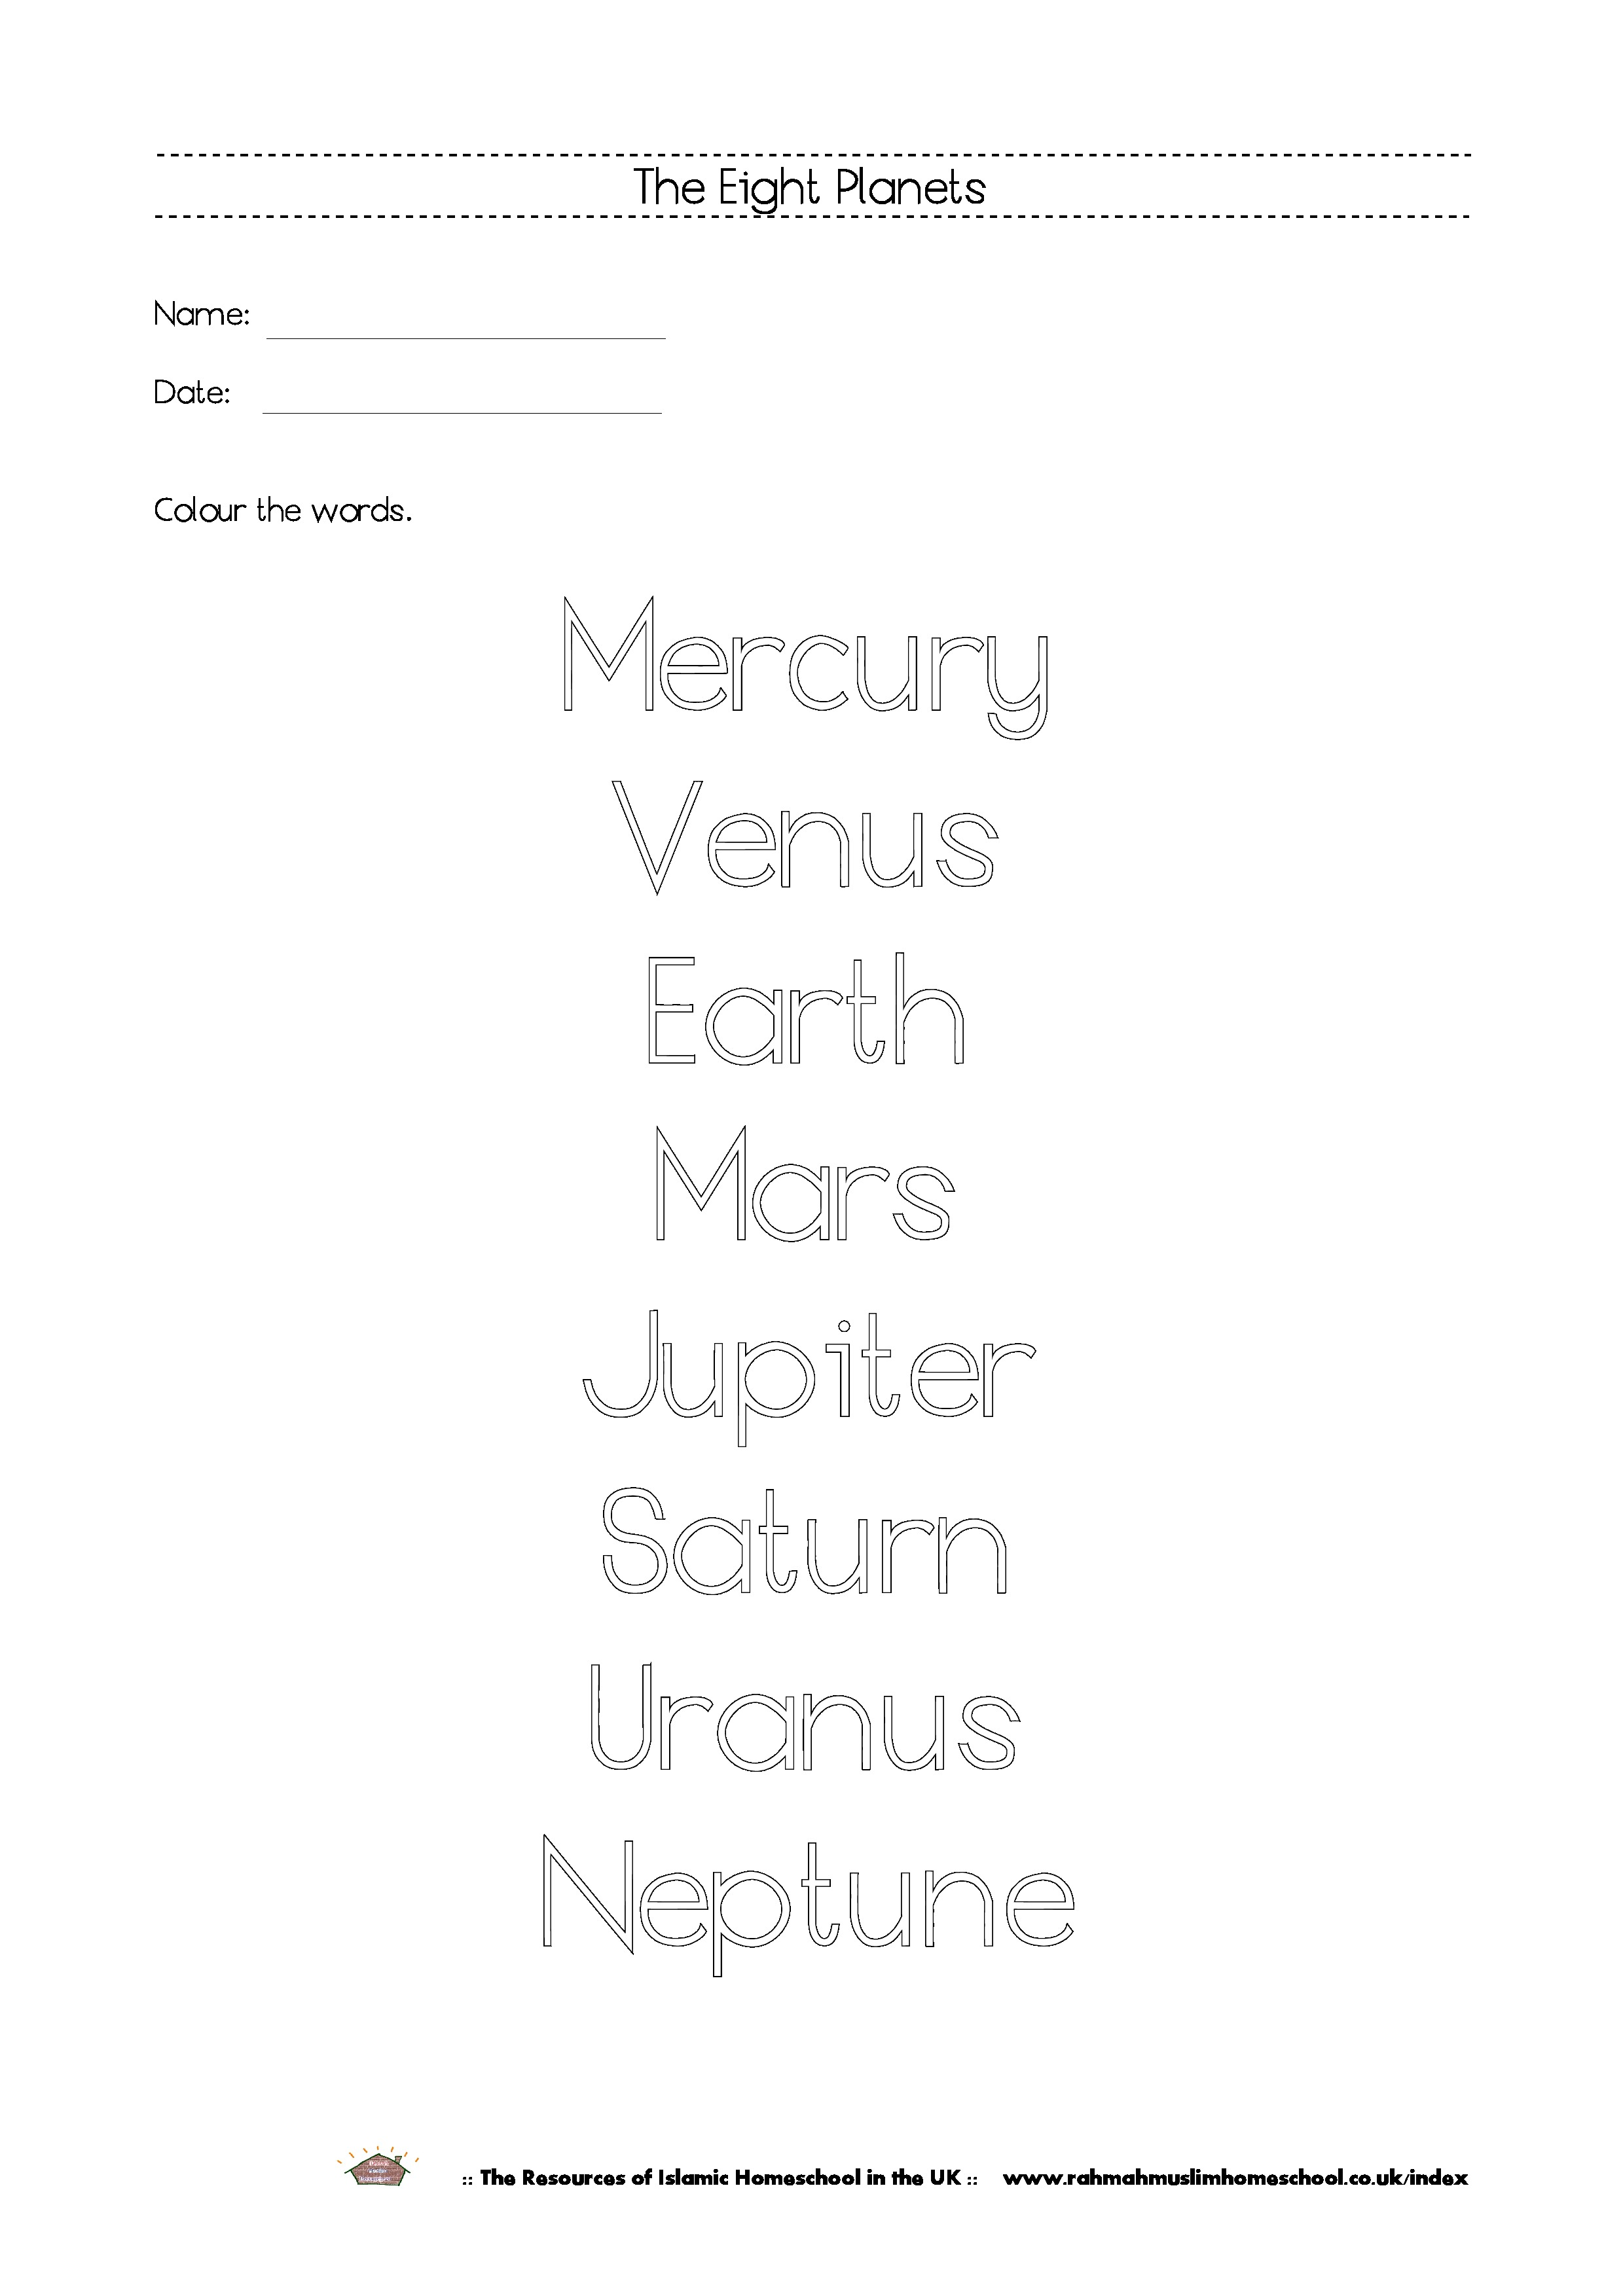 Free Printable The Eight Planets Workbook And Poster